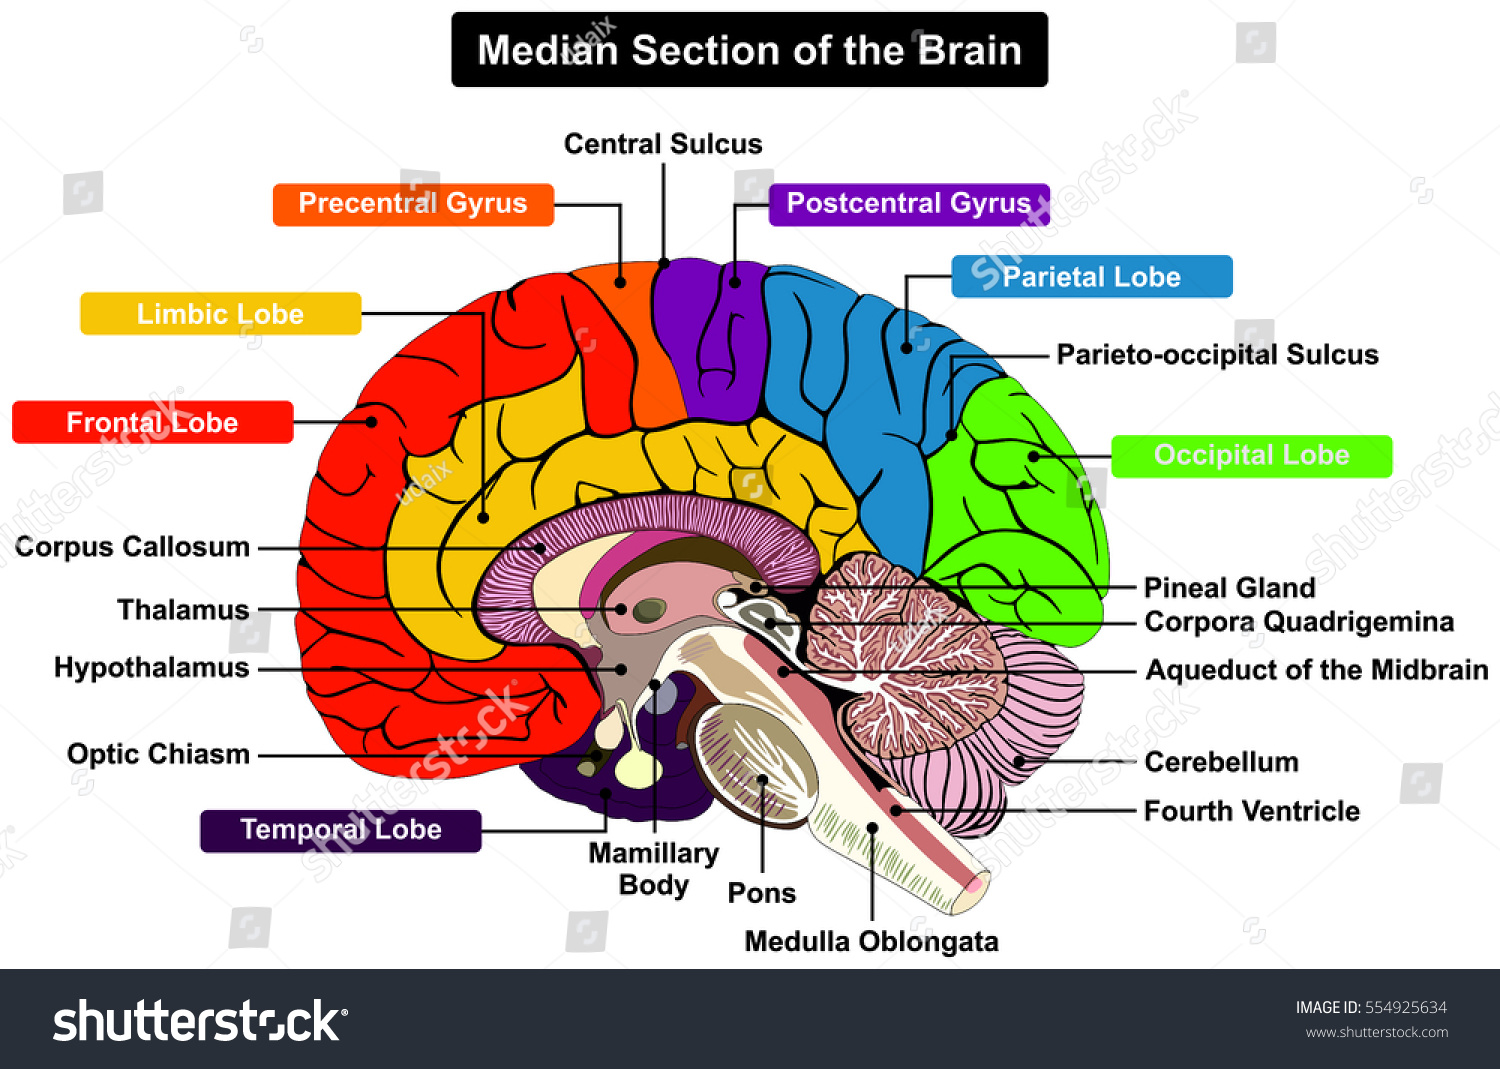 Median Section Human Brain Anatomical Structure Stock